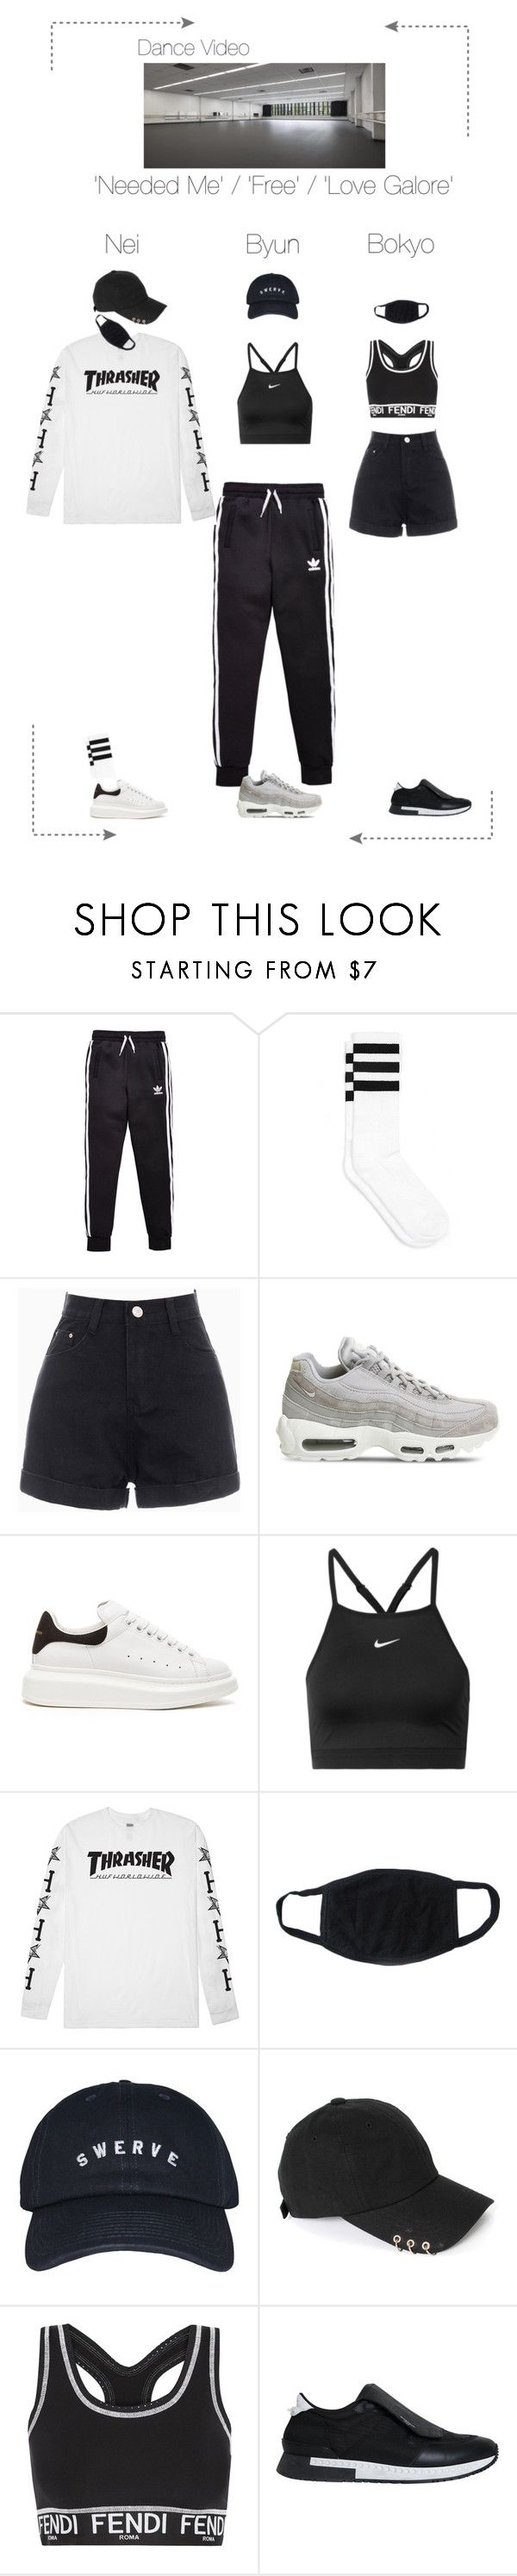 Lunar (루나) Needed Me / Free / Love Galore by Dance Line (Dance Video) by lunar-official ❤ liked on Polyvore featuring adidas Originals, NIKE, Alexander McQueen, HUF, Fendi and Givenchy